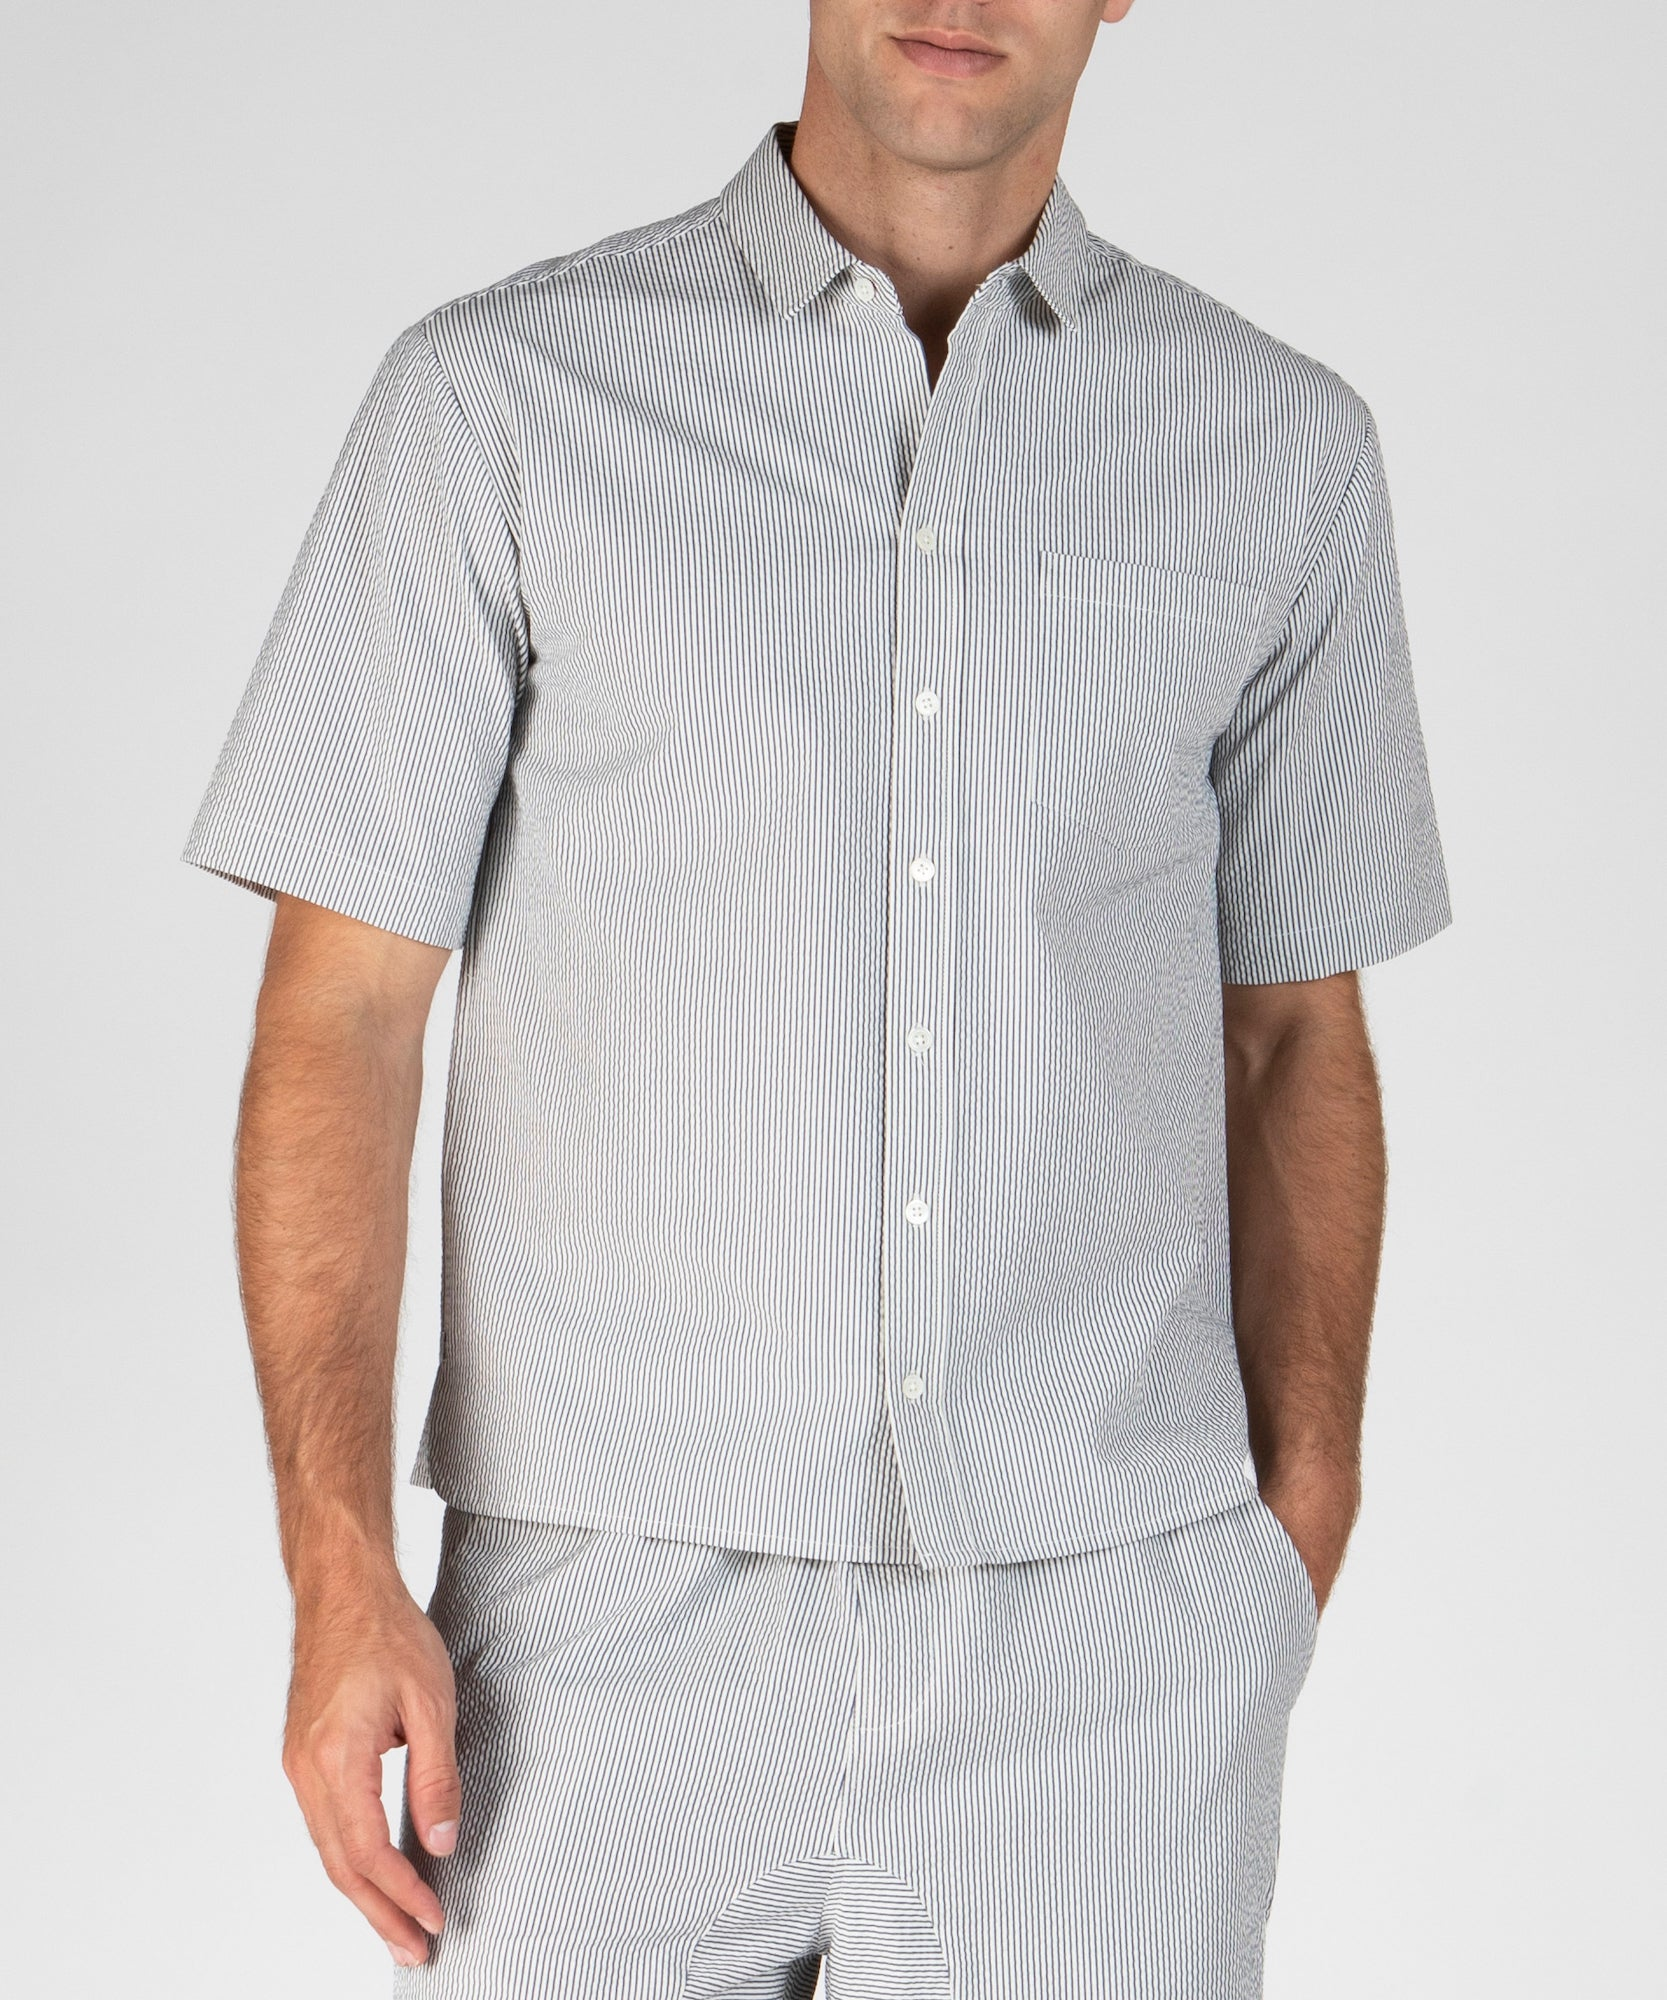 White and Navy Stripe Seersucker Short Sleeve Shirt - Men's Cotton Long Sleeve Shirt by ATM Anthony Thomas Melillo